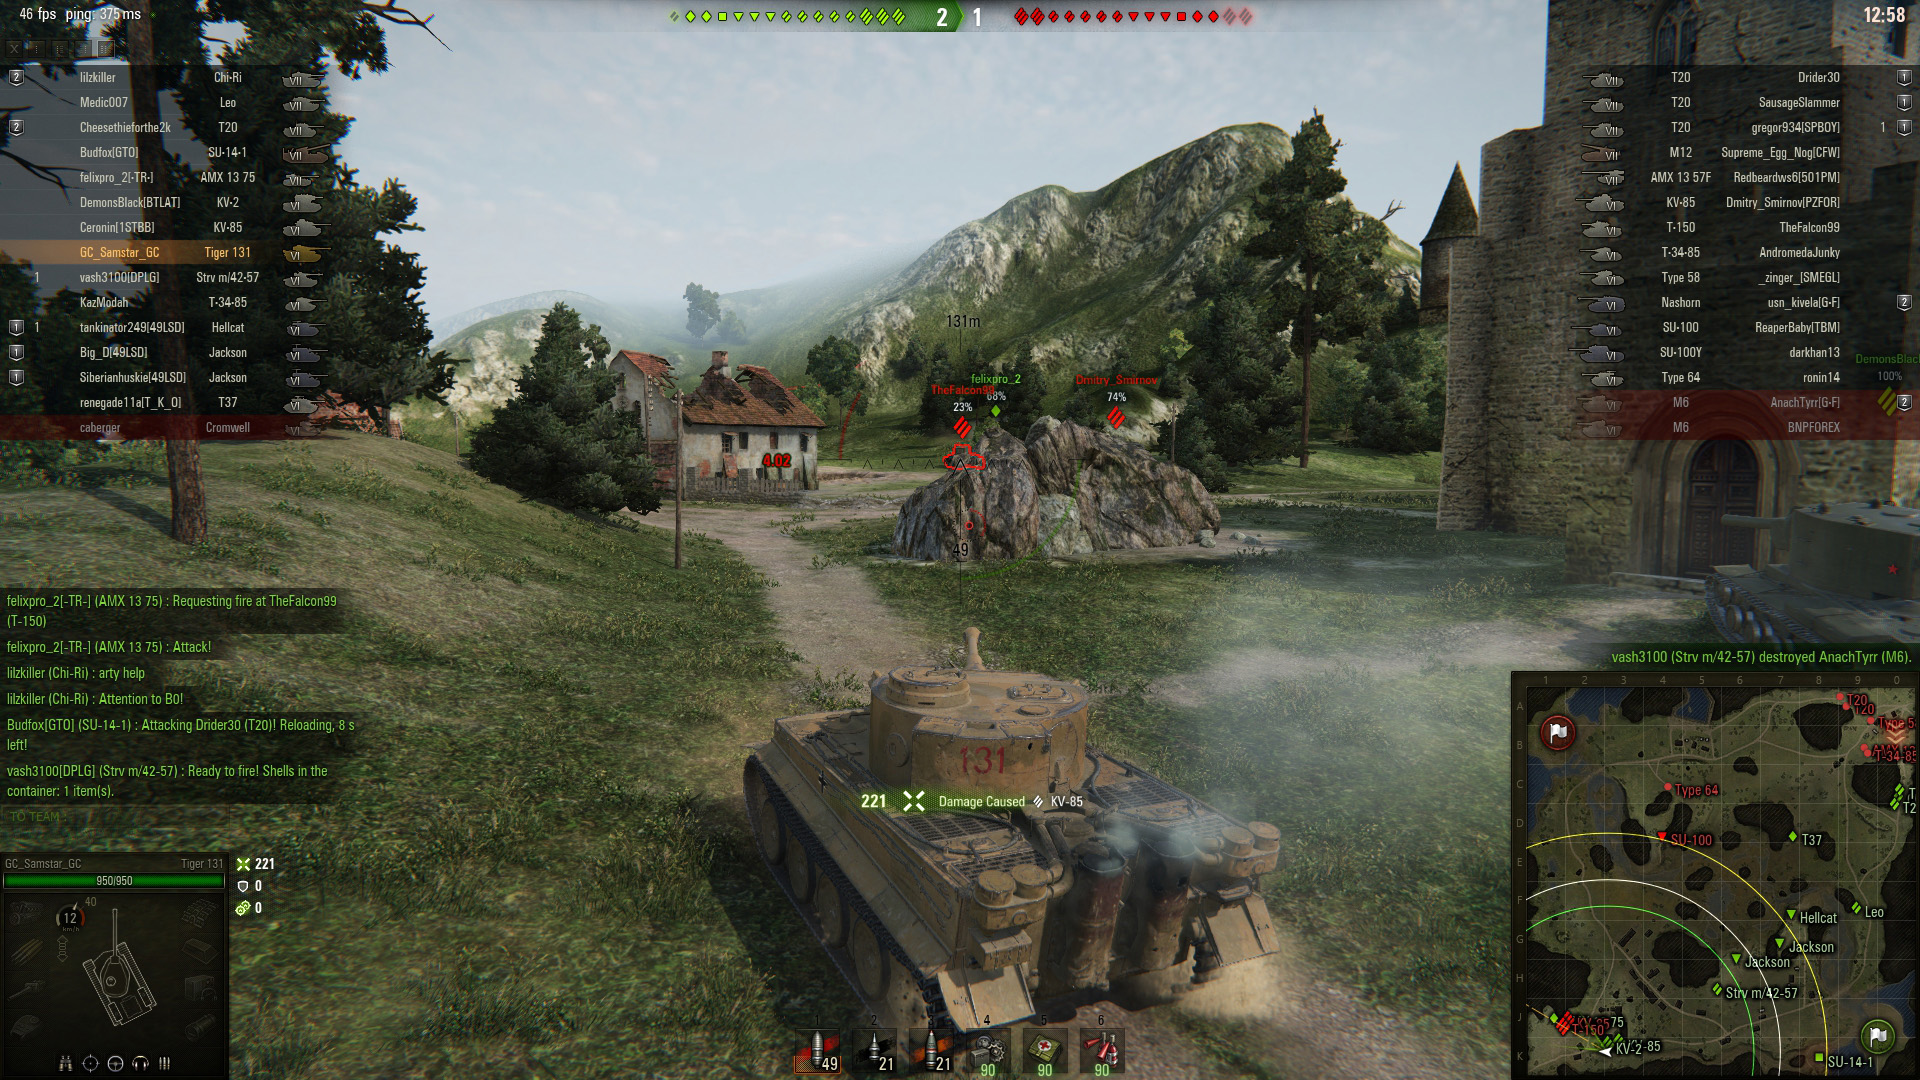 world of tanks best matchmaking tankdating a nice guy but no spark